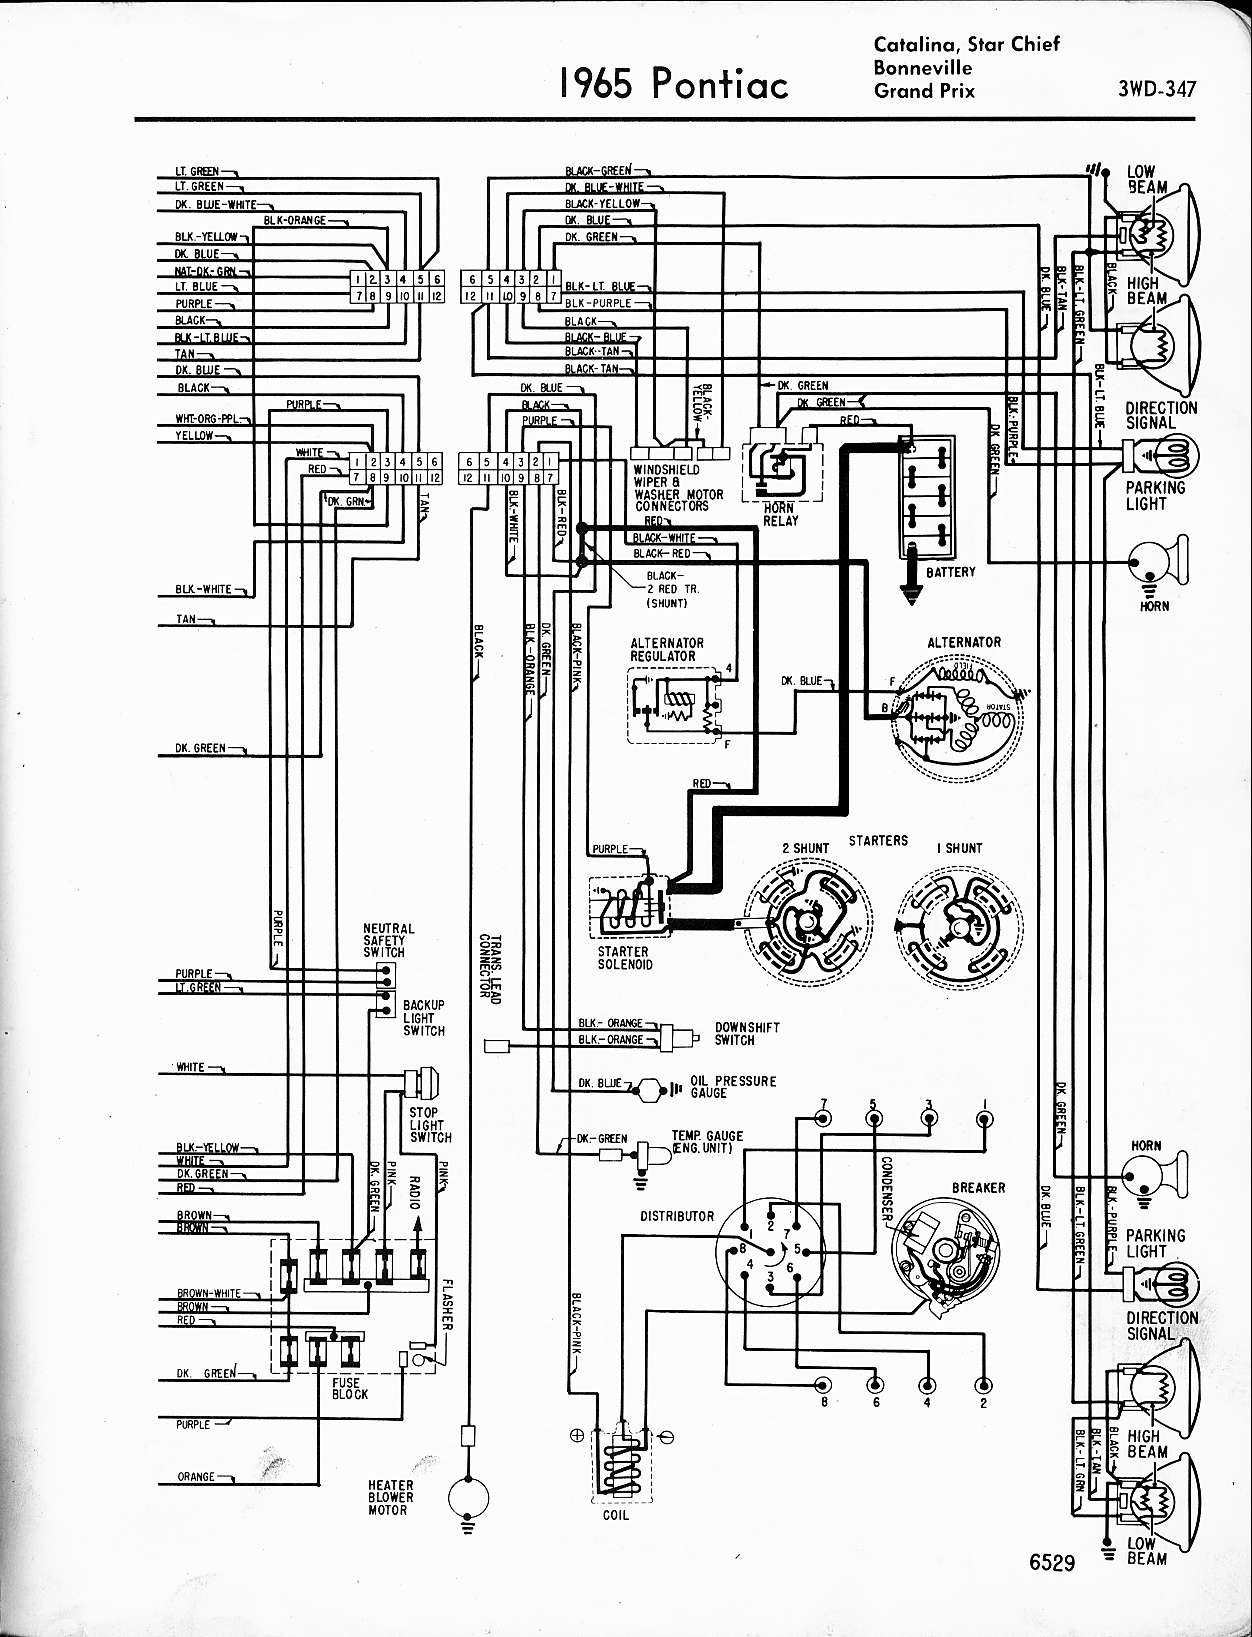 1965 pontiac grand prix wiring diagram wiring diagram u2022 rh tinyforge co